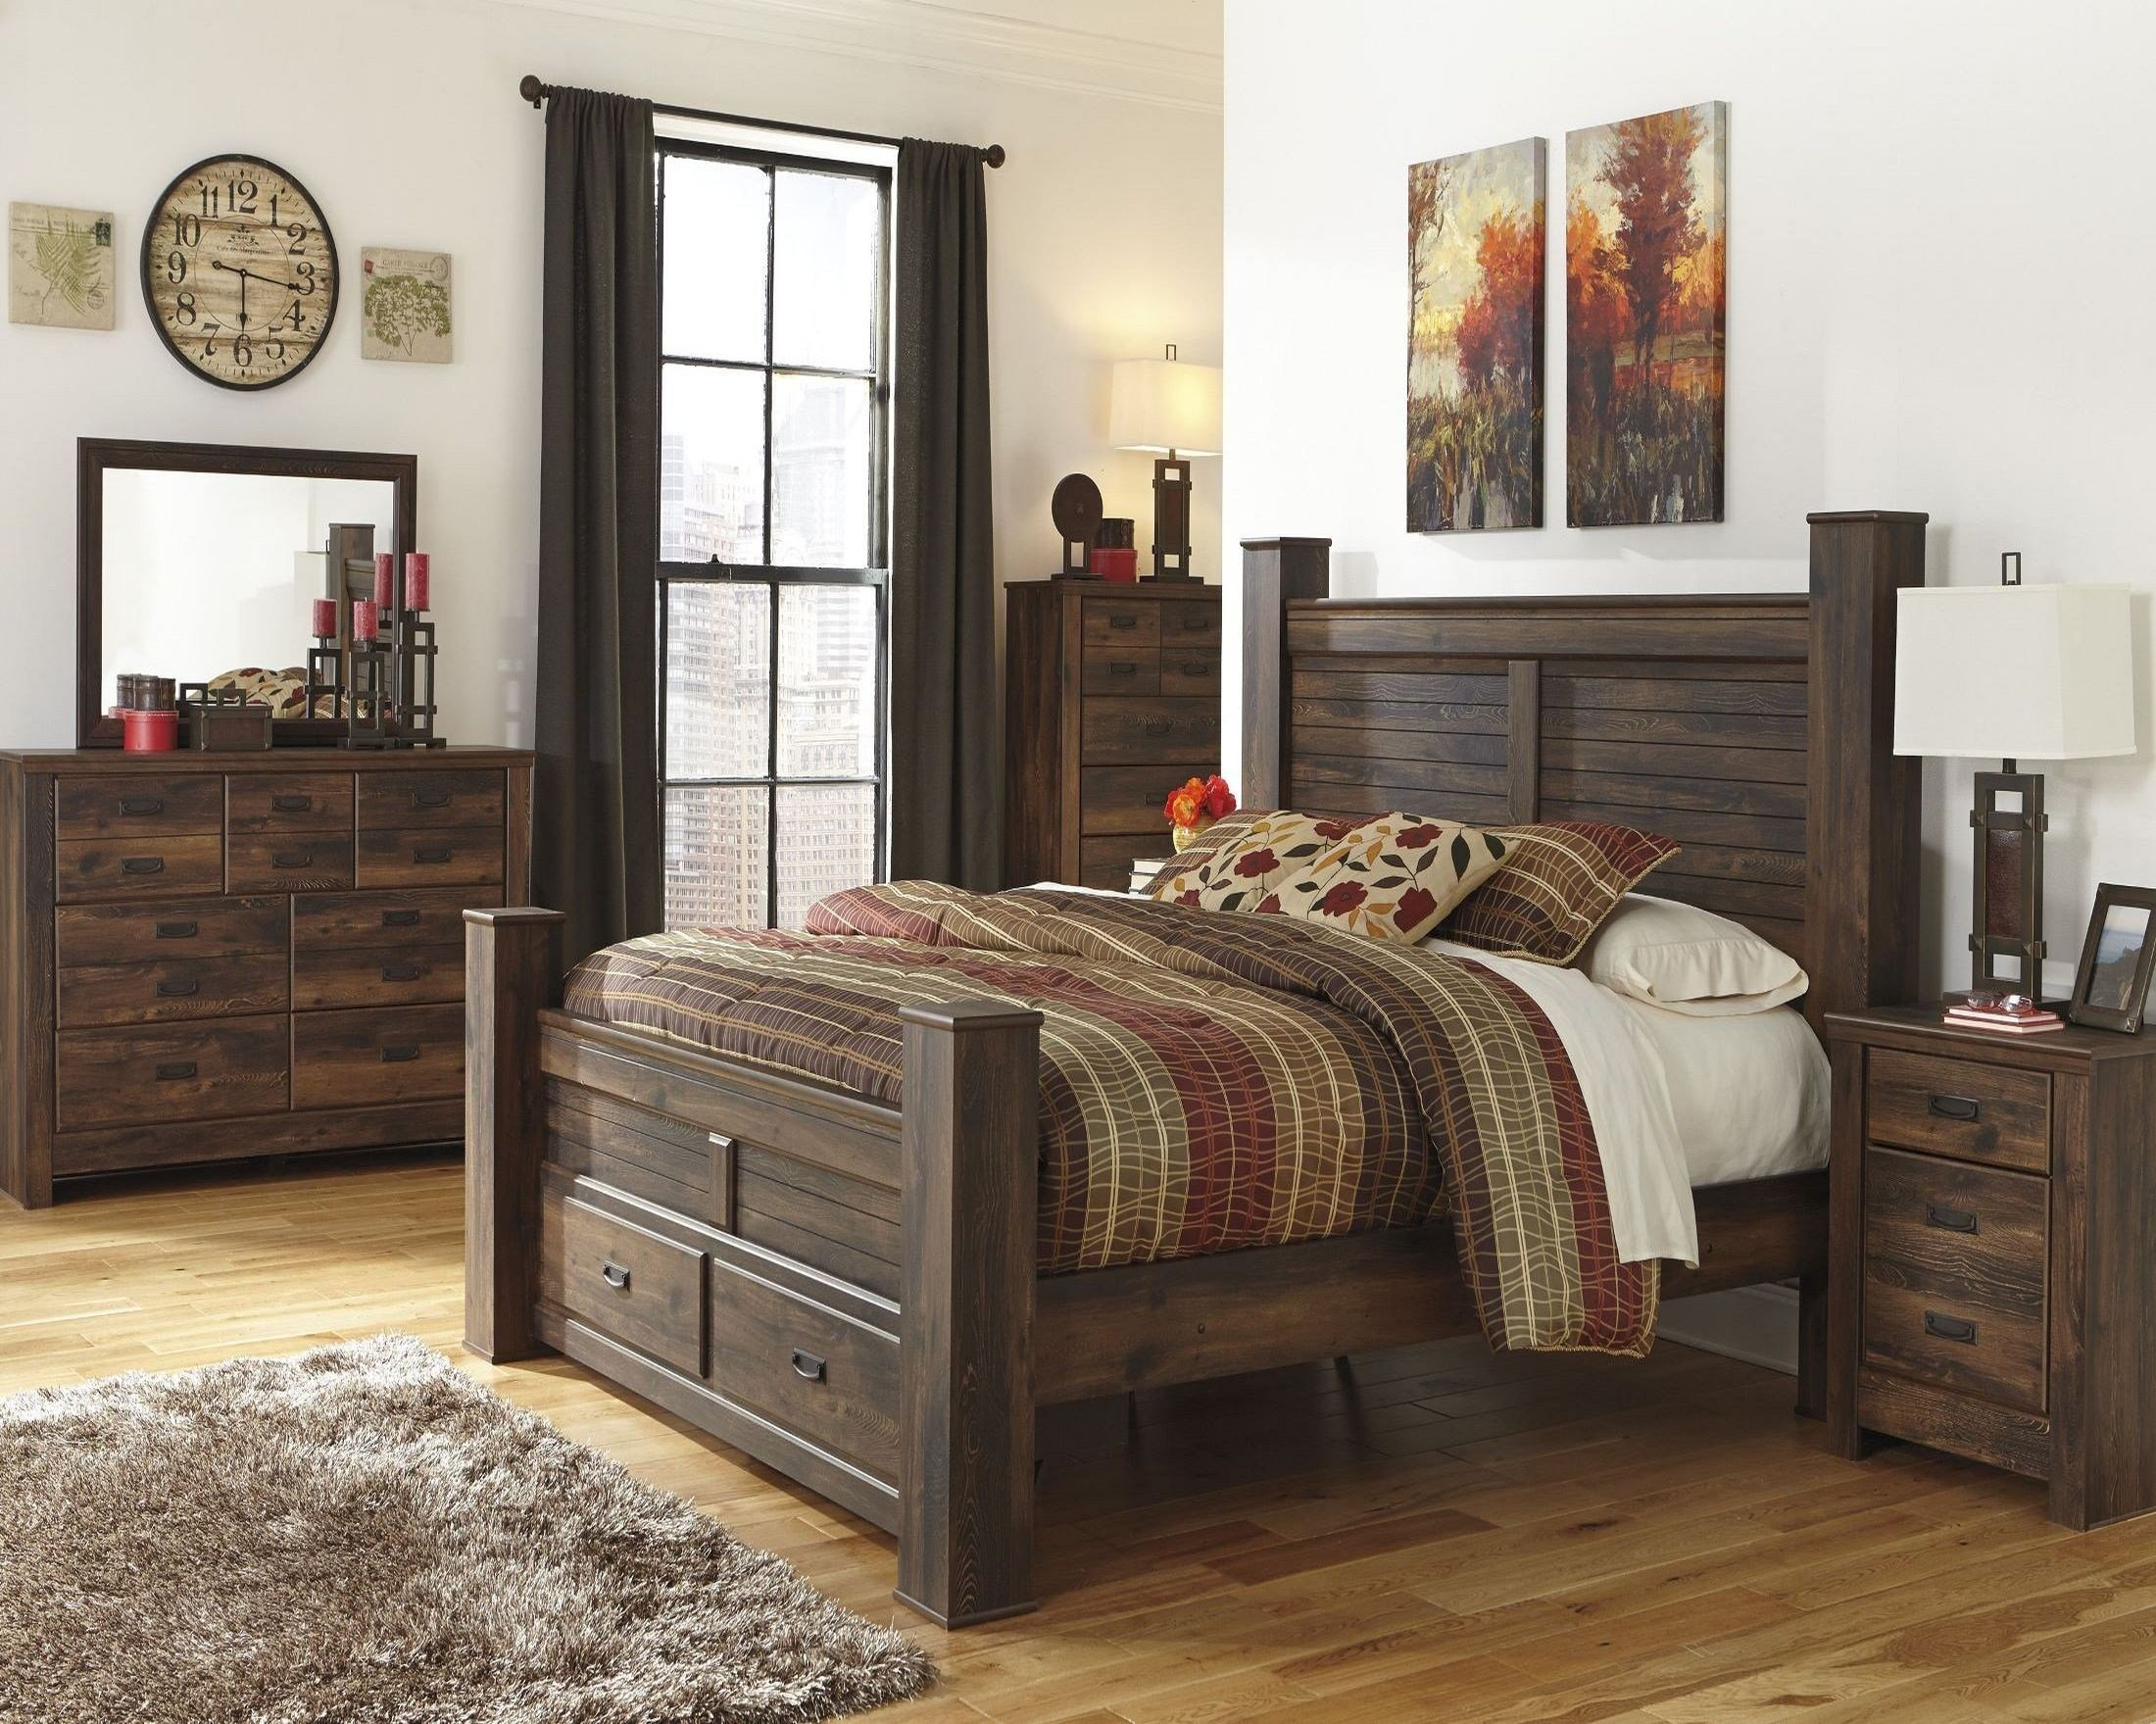 Best Quinden Poster Storage Bedroom Set From Ashley B246 61 With Pictures